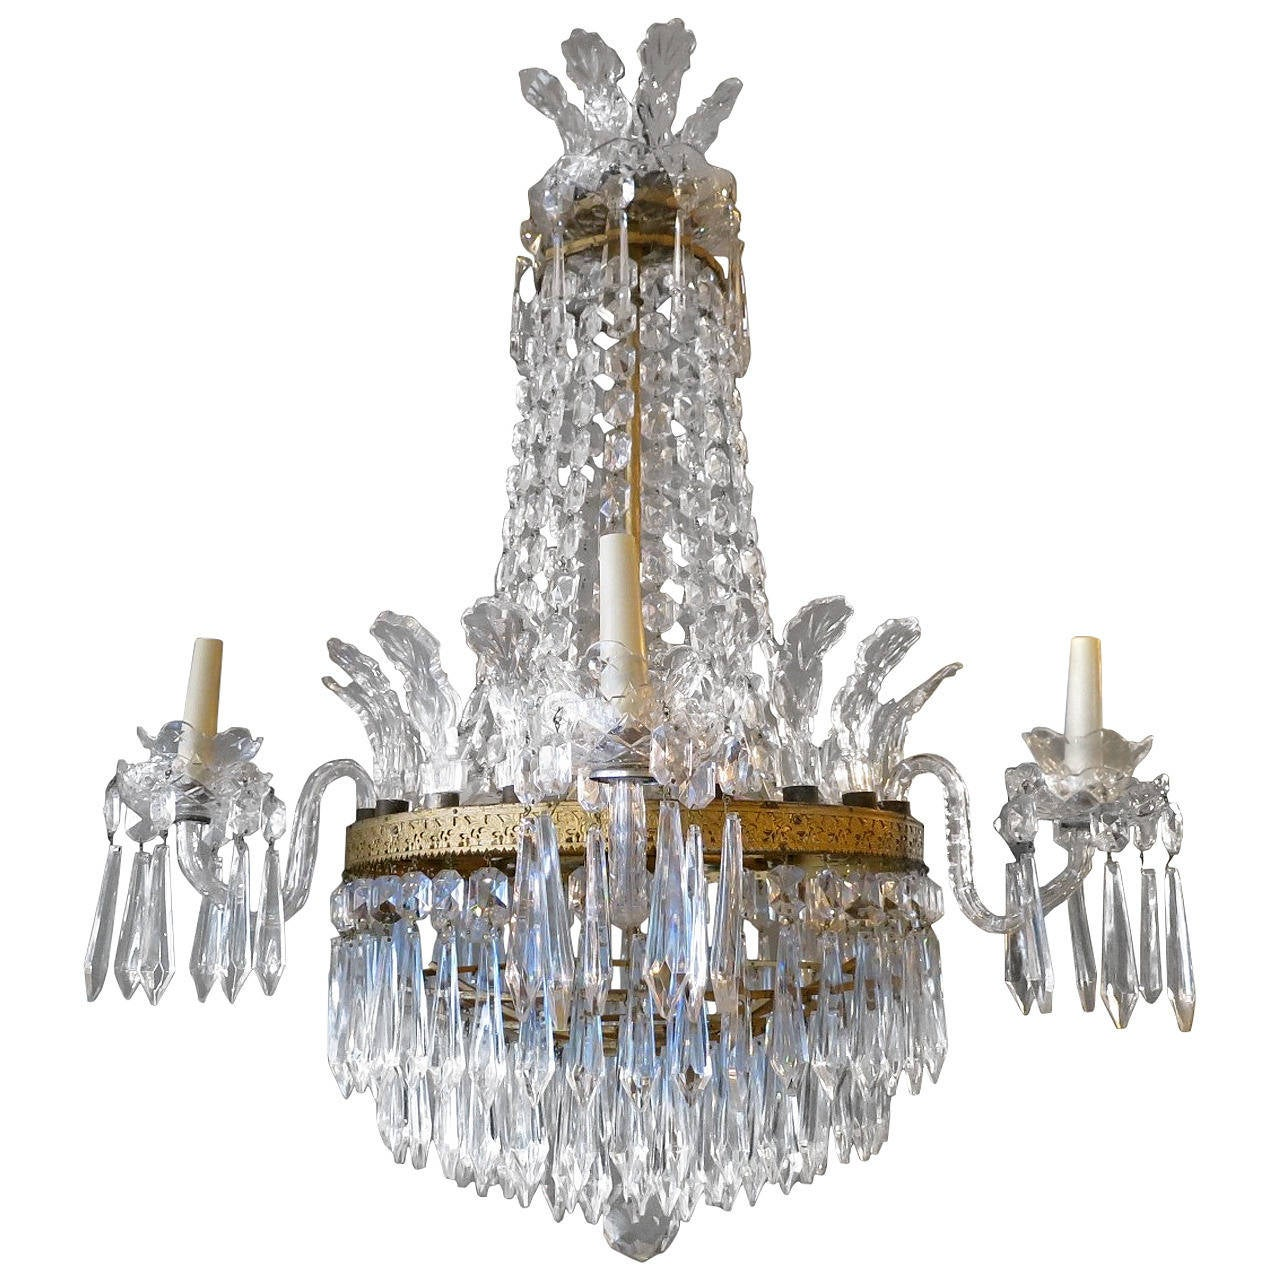 Empire style waterford crystal chandelier at 1stdibs empire style waterford crystal chandelier 1 arubaitofo Image collections